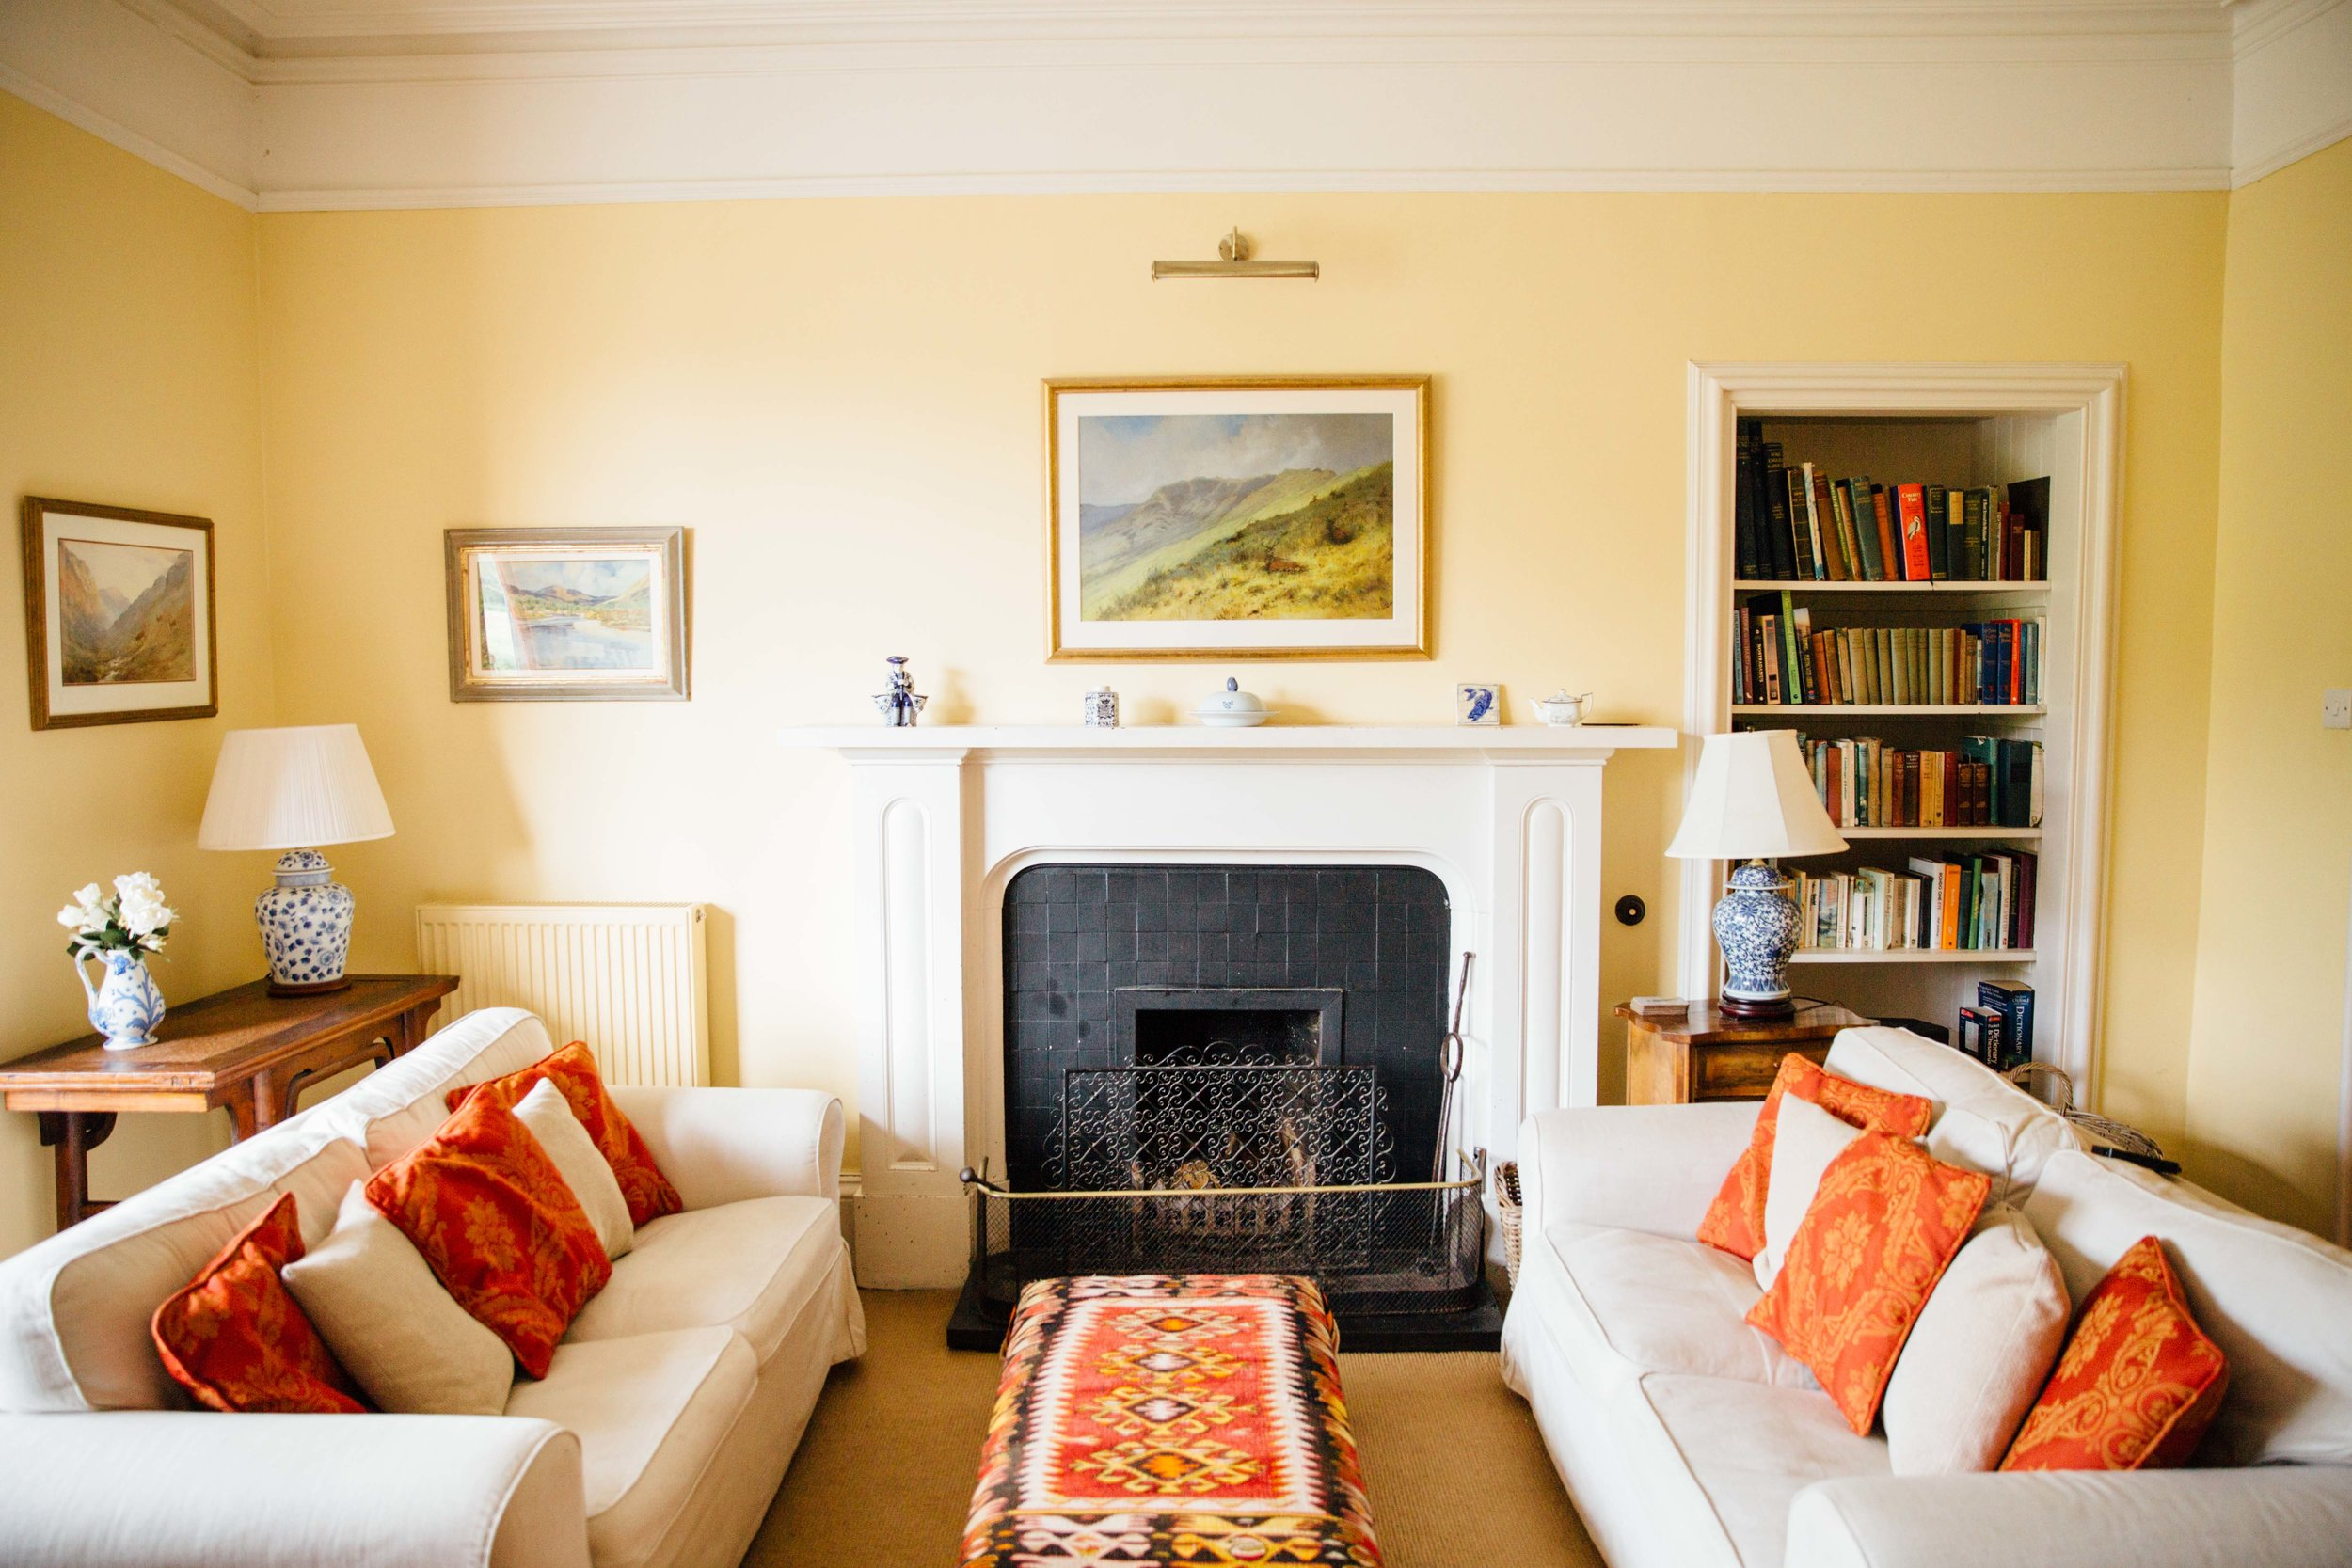 Ground Floor - Sitting Room with open fire and TVDrawing Room with open fireMorning Room with open fireDining Room with open fireStudy with open fire and TV, desk and Wi-Fi hubDogs room with sinkLarge conservatory porch with drying cupboardsButlers pantry equipped with sink, dishwasher, fridge for drinks, wine racksand cupboards for chinaKitchen equipped with four-oven electric Aga and two warming ovens, large fridge and dishwasherLarge walk-in larderScullery and wash room with tumble drier, washing machine and deep freezeWC